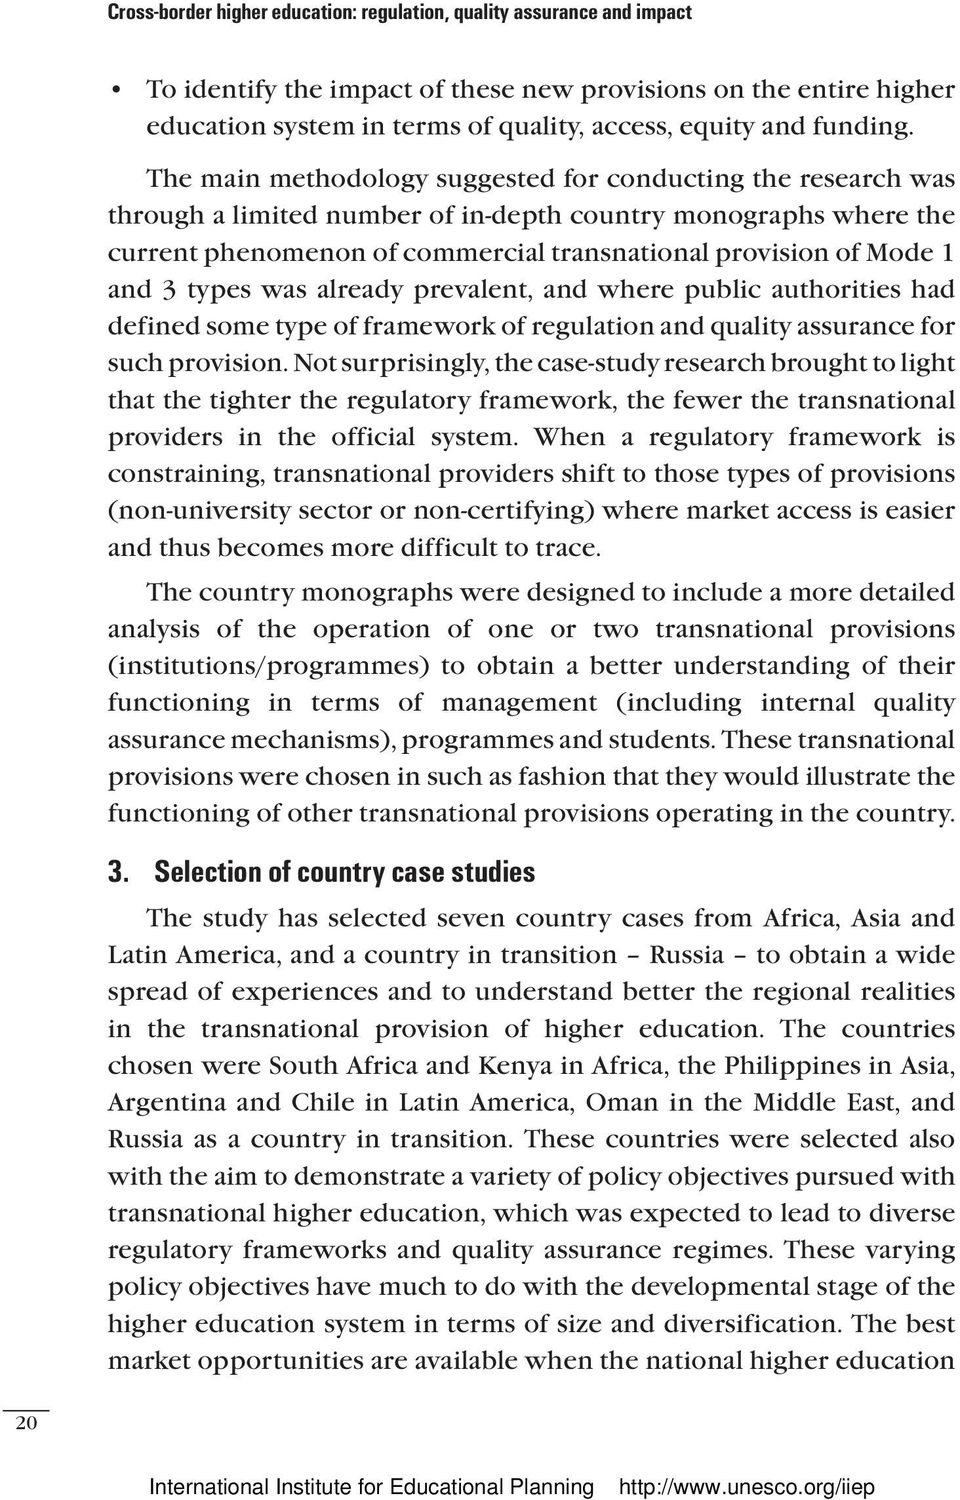 The main methodology suggested for conducting the research was through a limited number of in-depth country monographs where the current phenomenon of commercial transnational provision of Mode 1 and